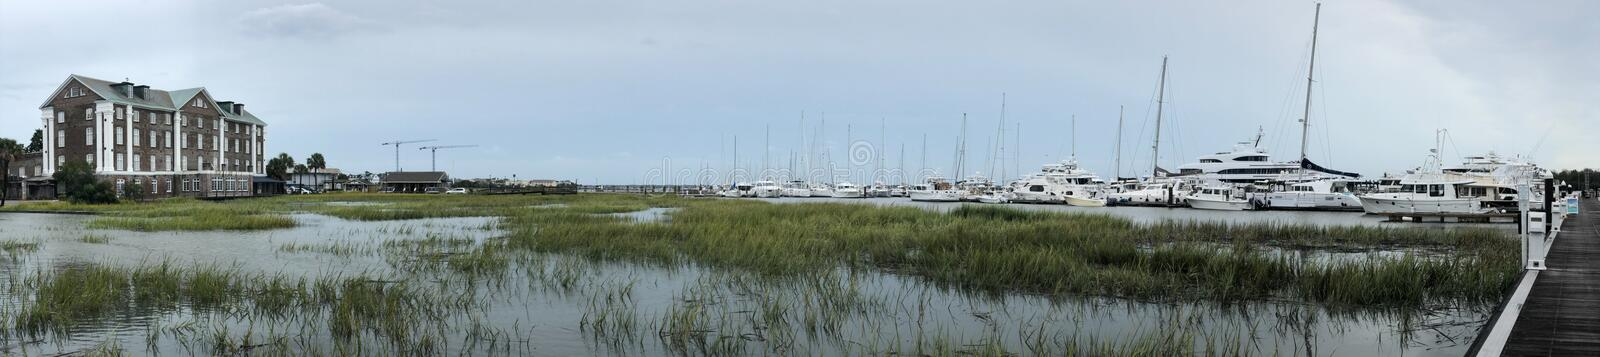 Panoramic View of Safe Harbor Charleston City Prior to Arrival of Hurricane Dorian.  royalty free stock image